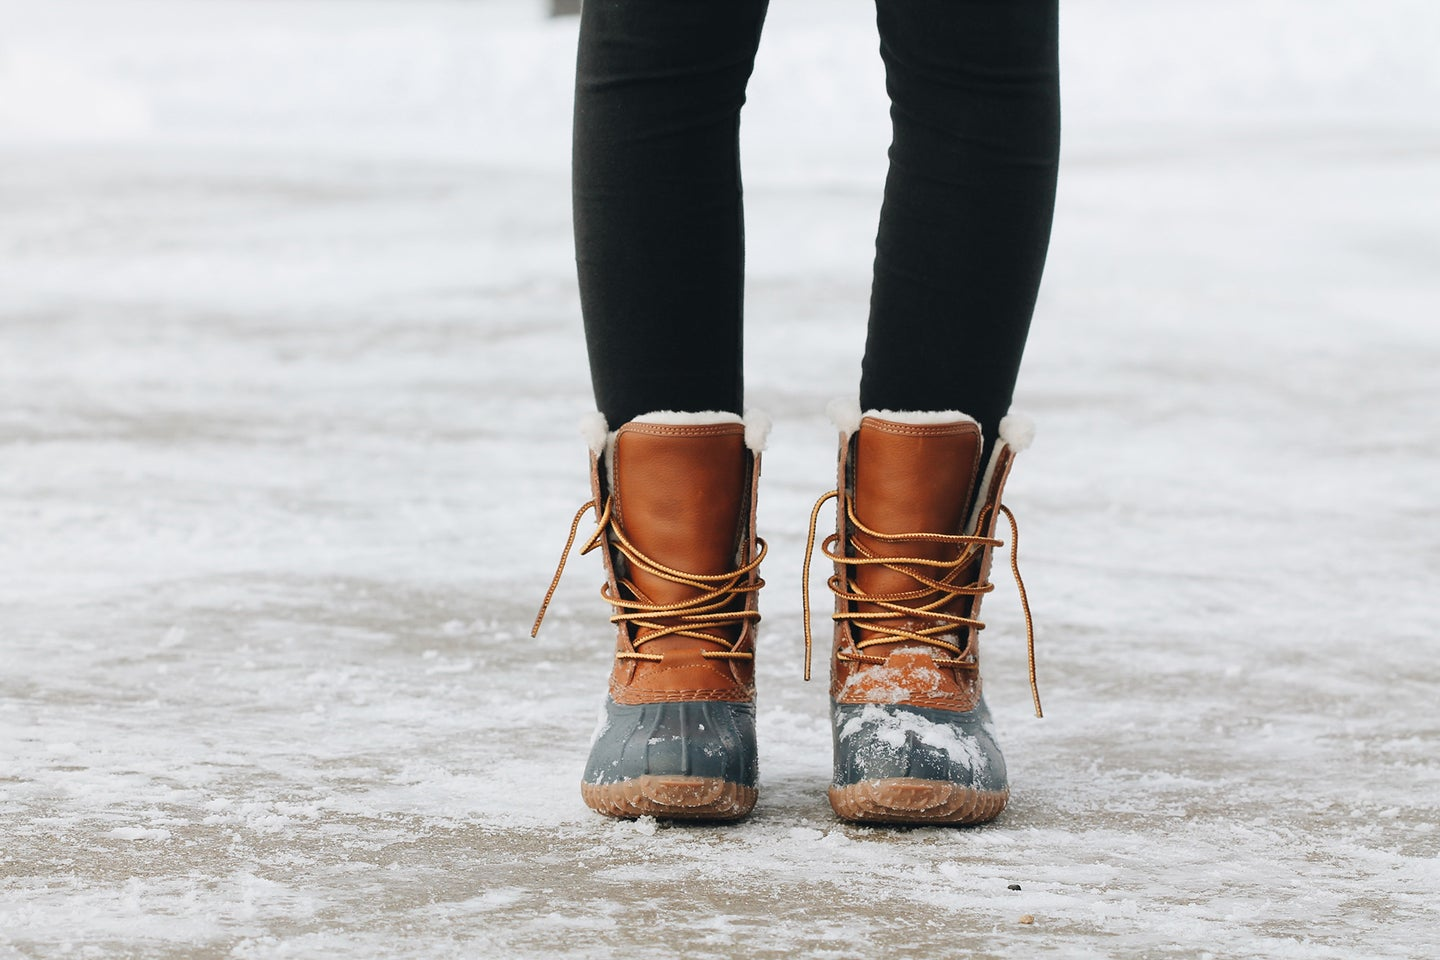 person in brown winter boots standing on a snowy and icy ground